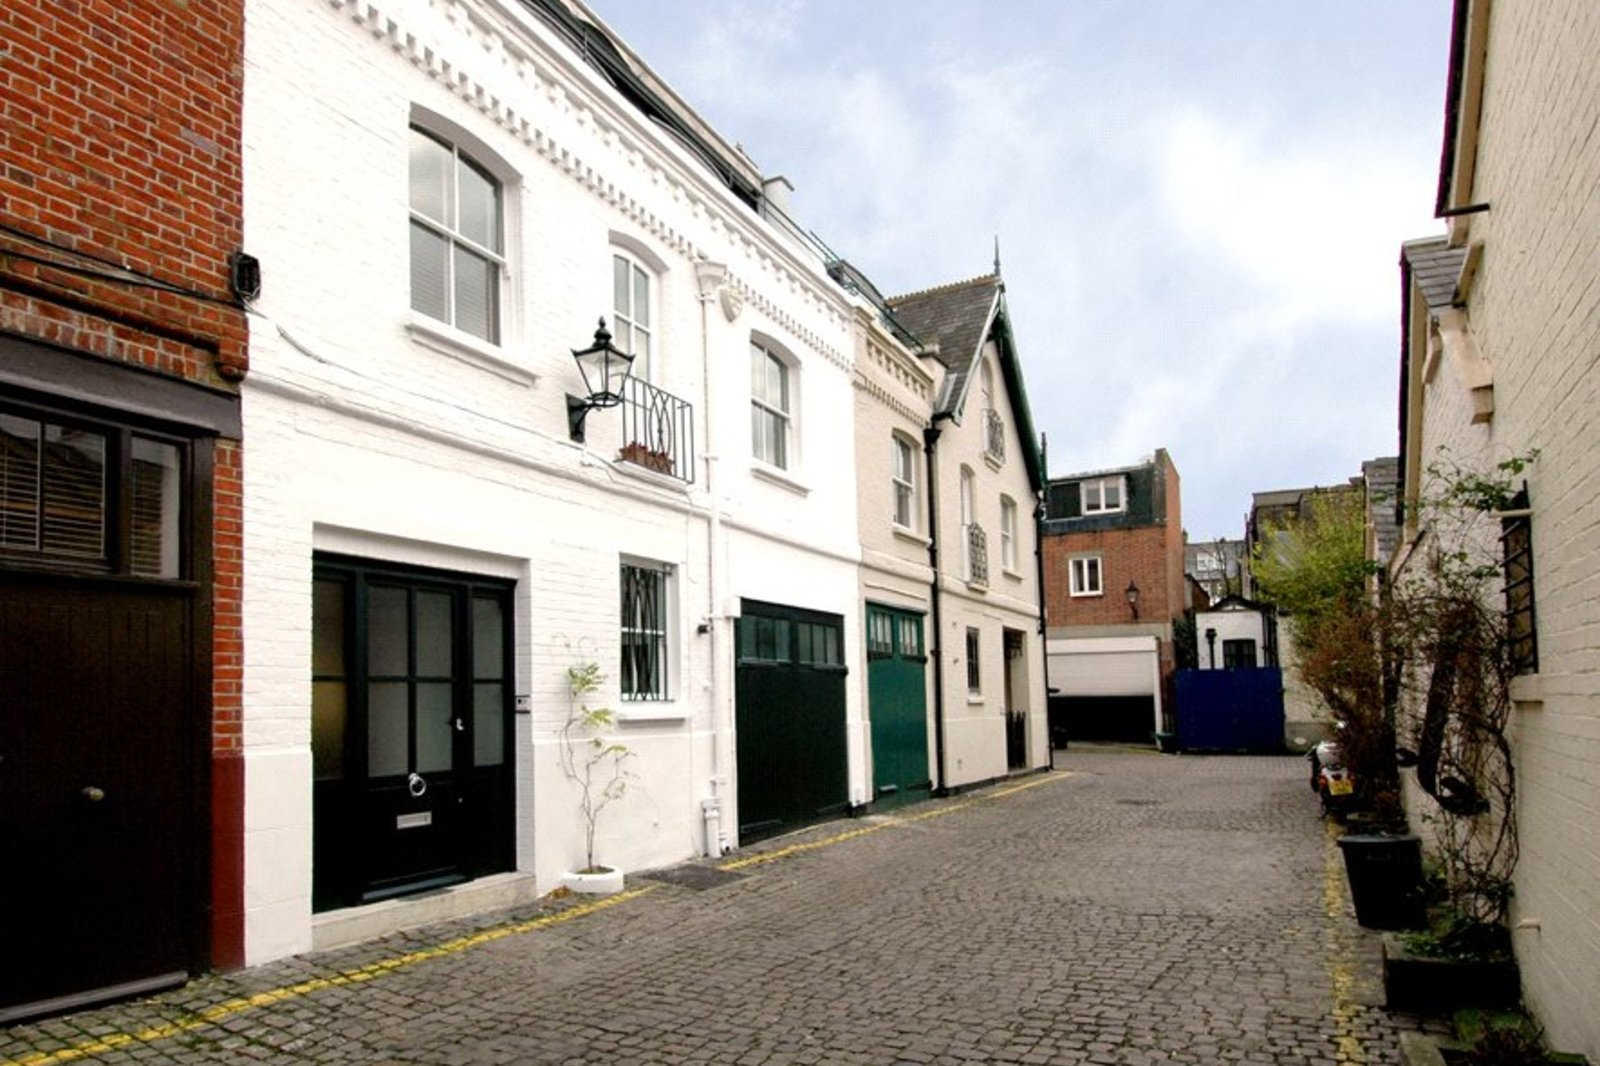 Adam & Eve Mews, Kensington High Street, Abingdon Village, W8-2